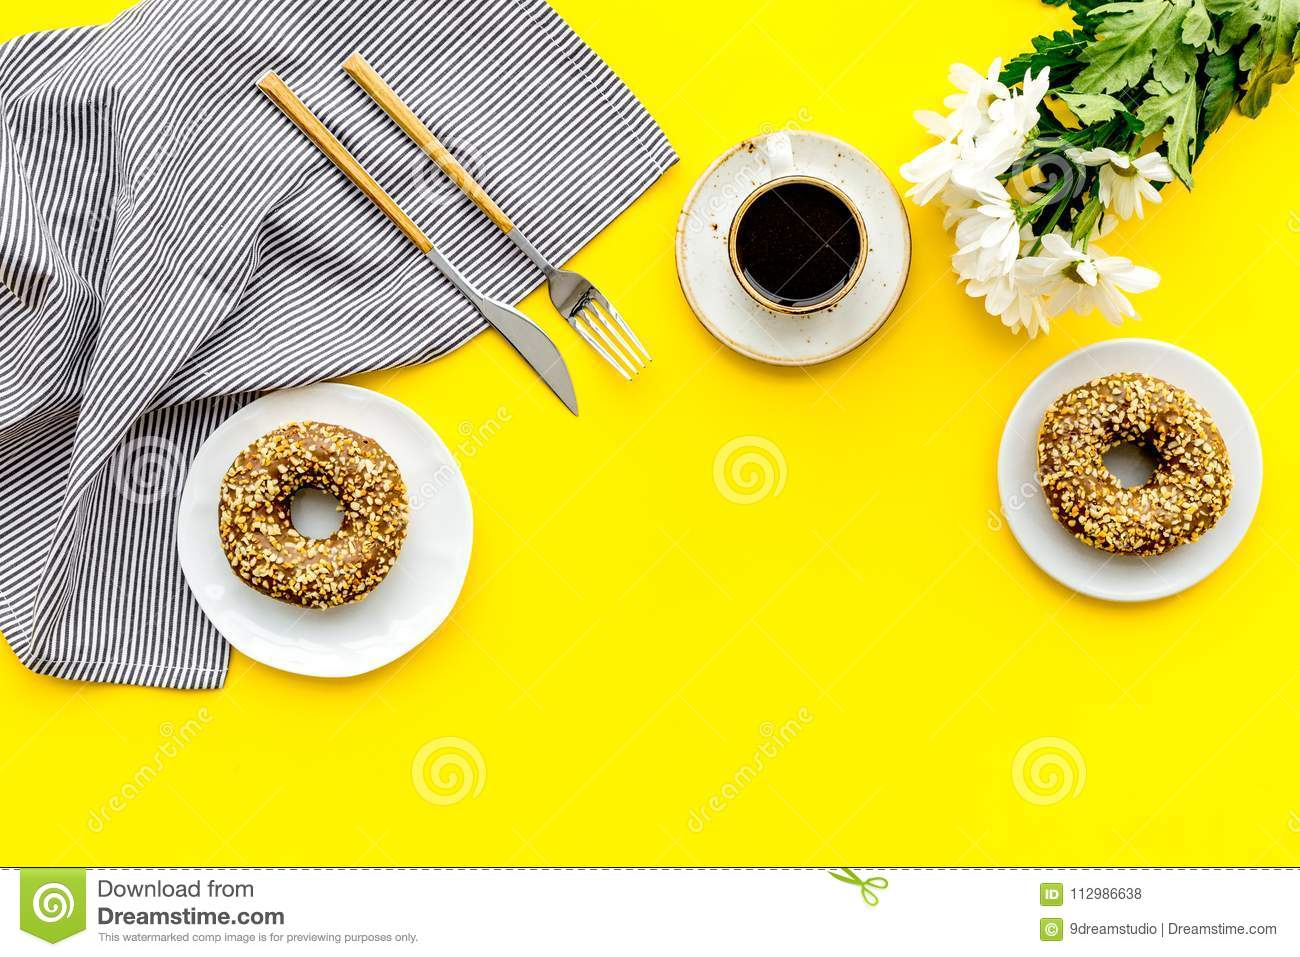 Woman desk with flowers, coffee and donuts for breakfast in spring desing yellow background flat lay mock-up